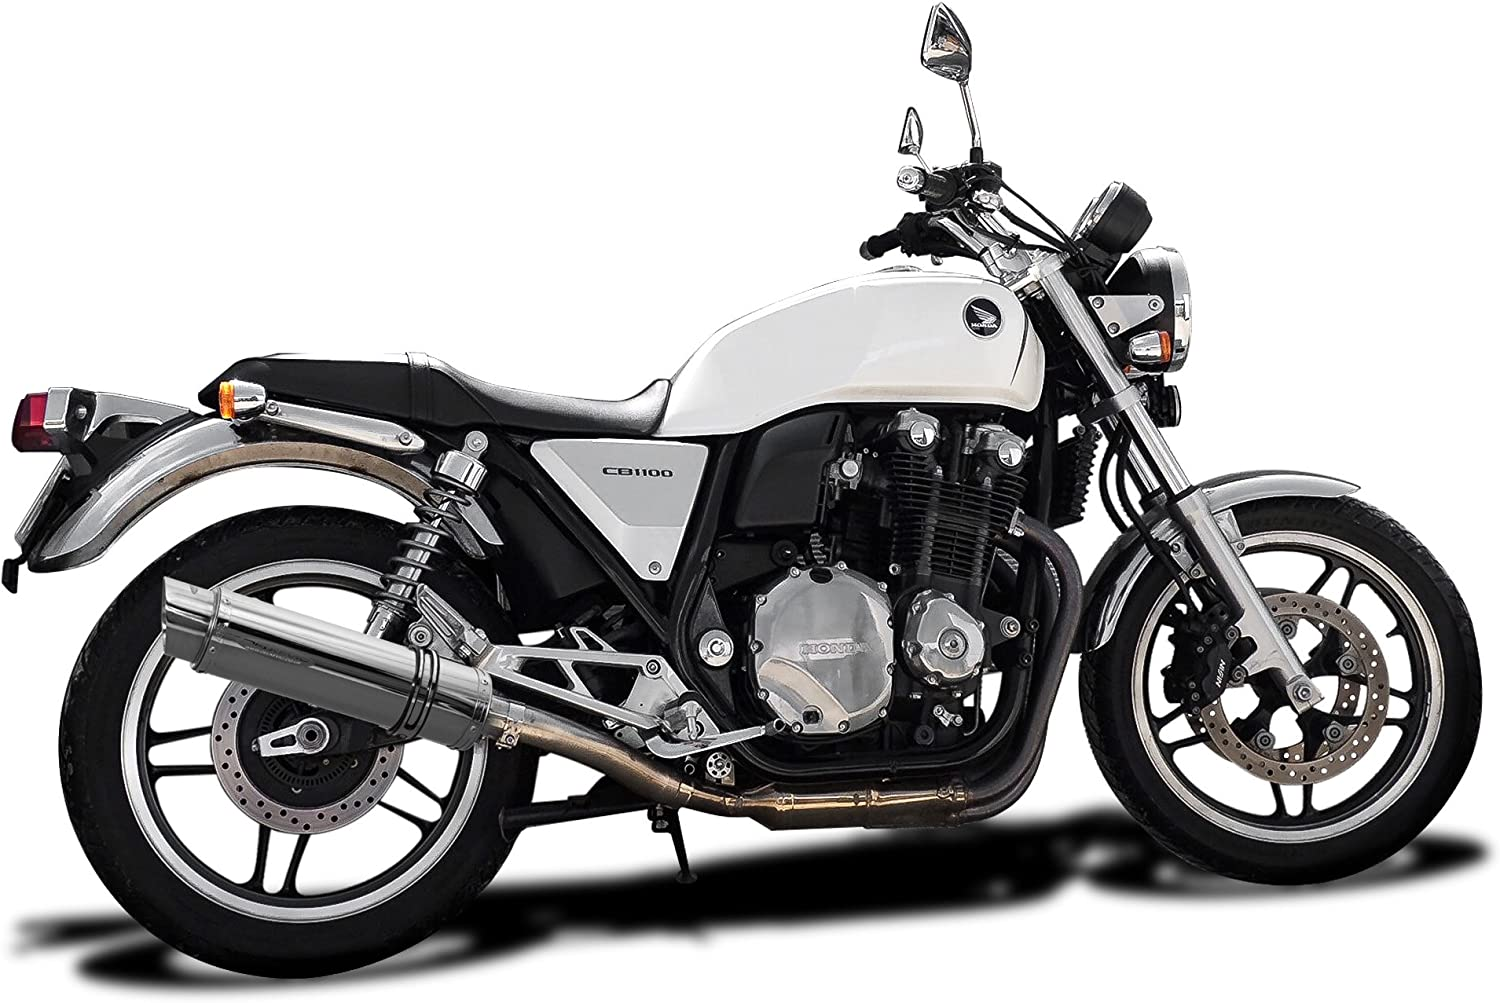 Delkevic Aftermarket Slip On compatible with Honda CB1100 SL10 14 Stainless Steel Round Muffler Exhaust 13-14